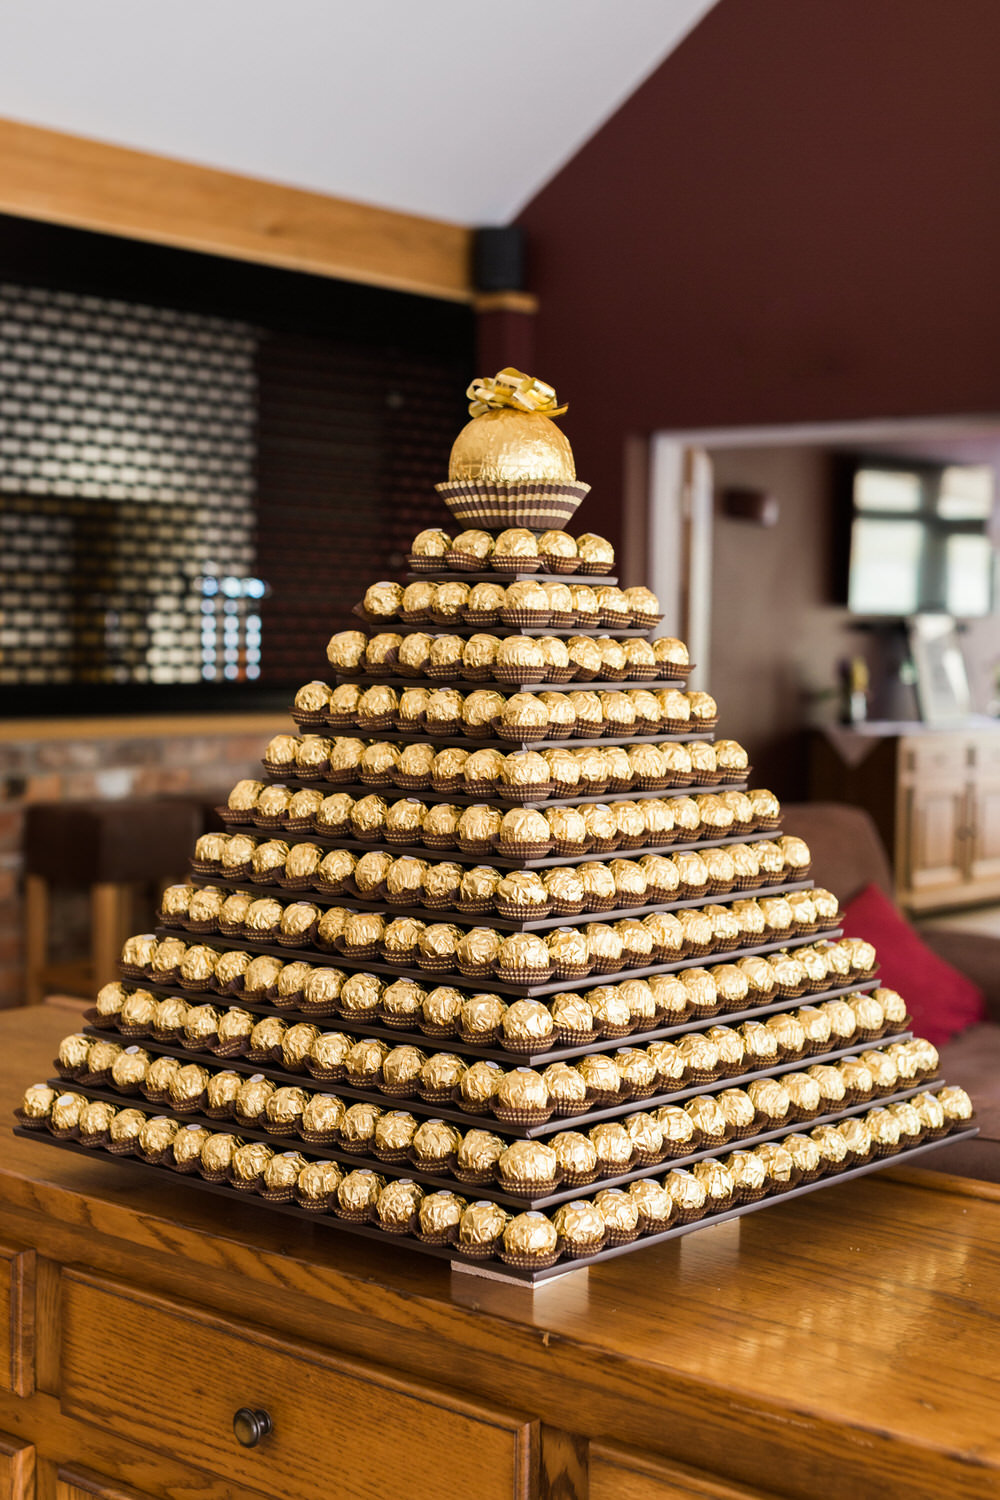 Special-Day-Photography-The-Bringewood-Ludlow-The-Bringewood-Hillside-Wedding-Ferrero-Rocher-wedding-cake.jpg